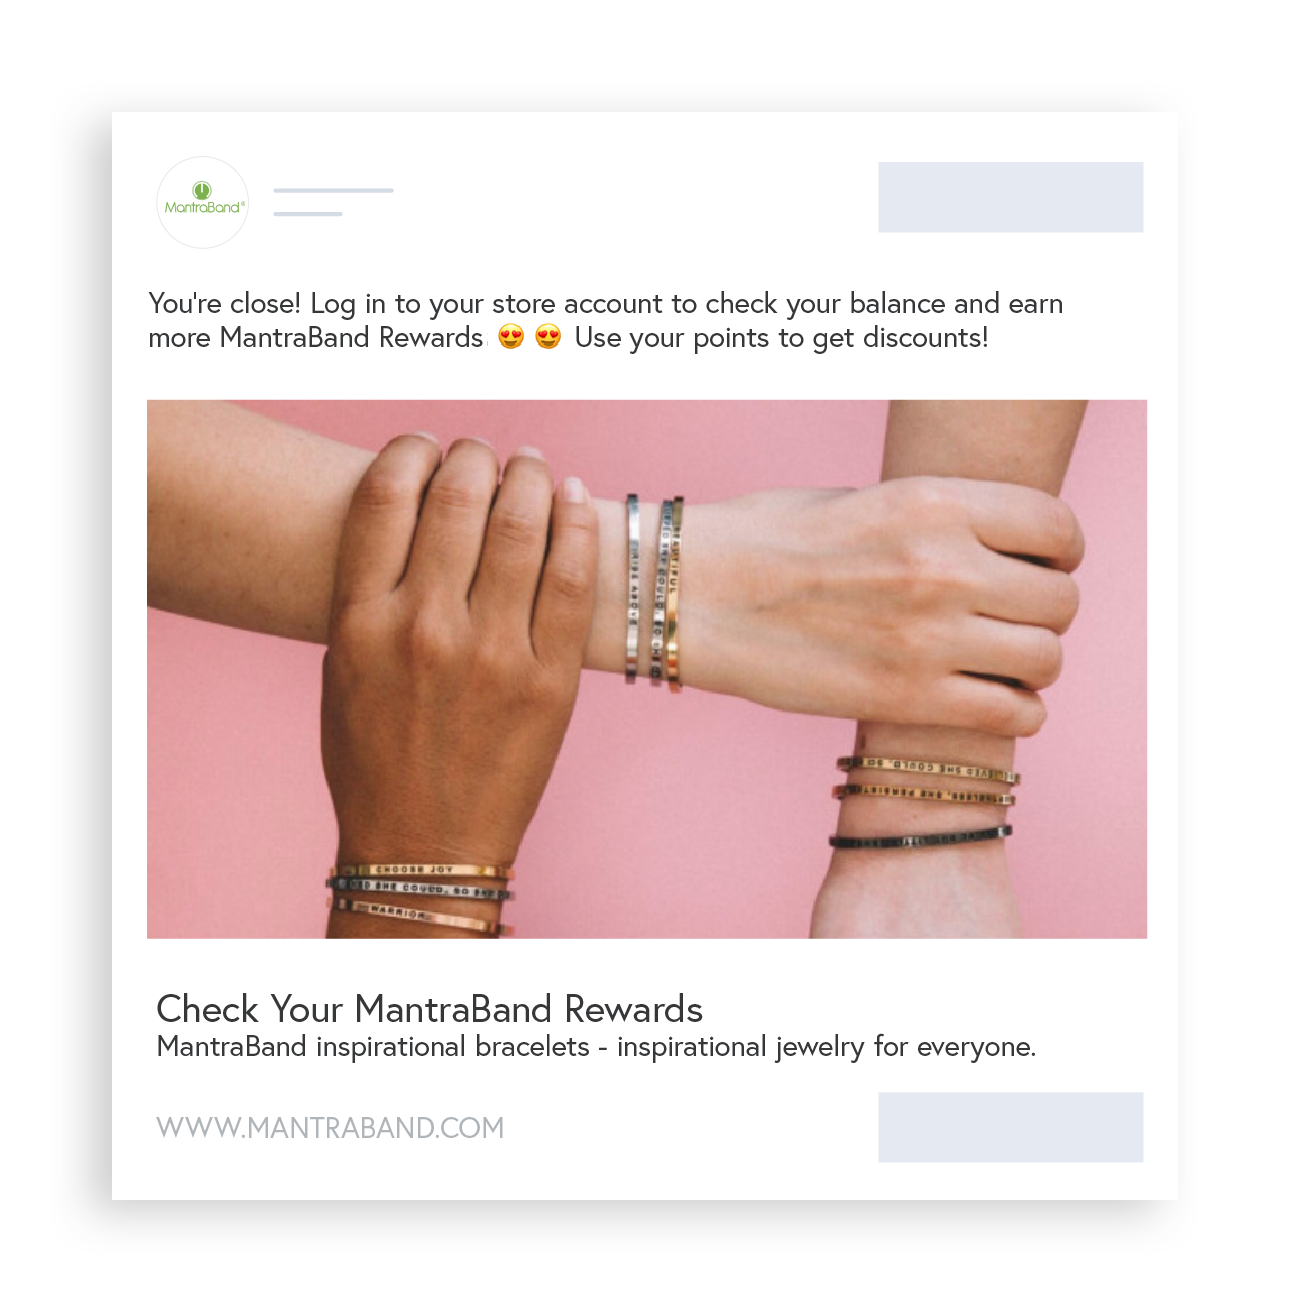 New Smile App Shoelace - existing member earn rewards with retargeting